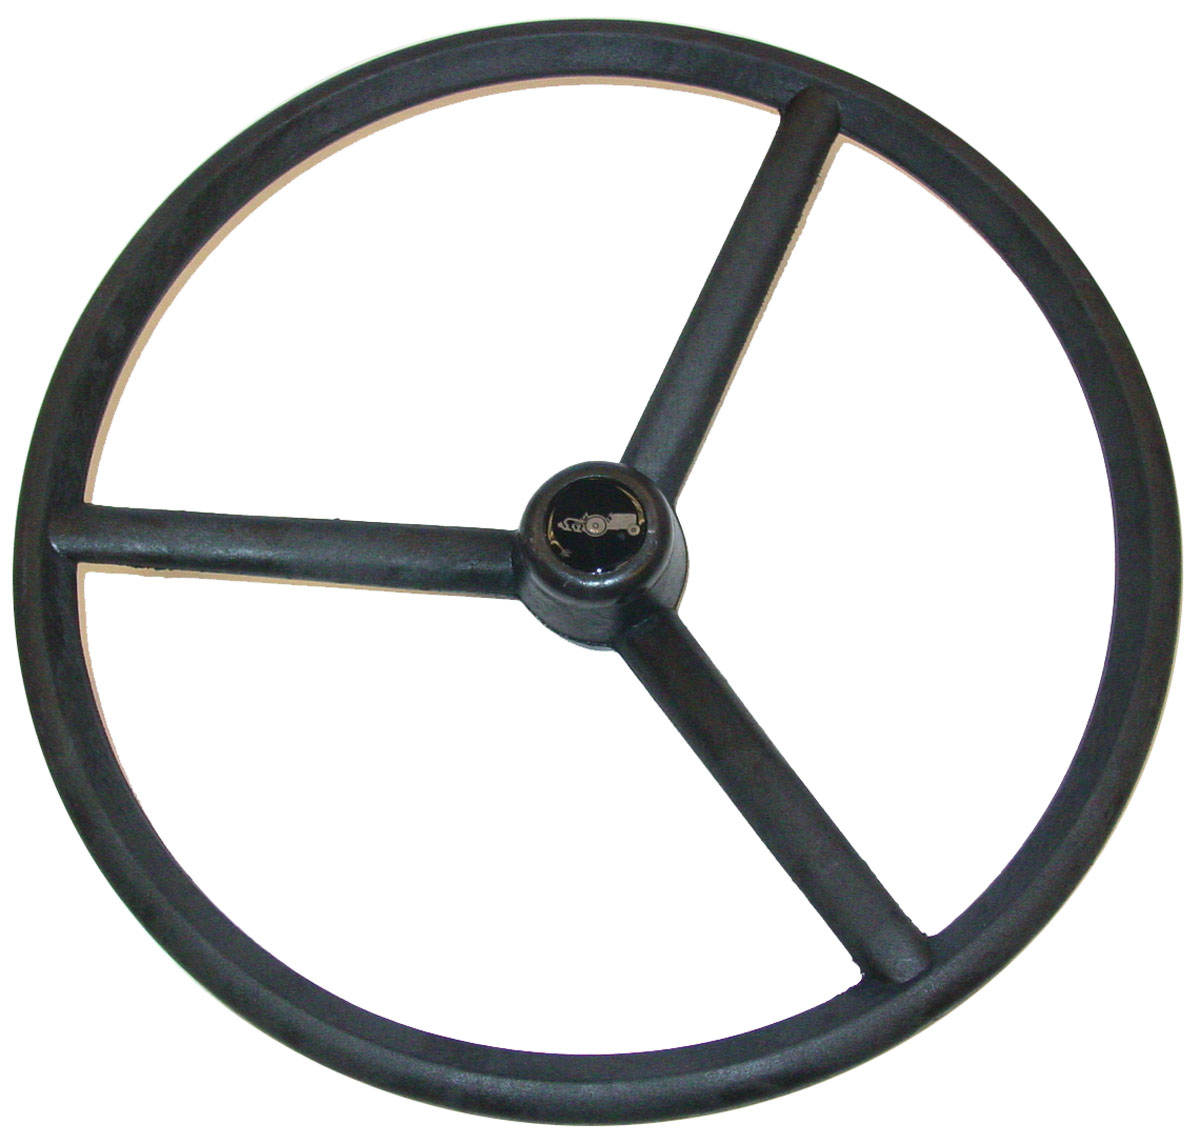 Ford 4000 Tractor Steering Wheel : Fds steering wheel ford n tractor parts for